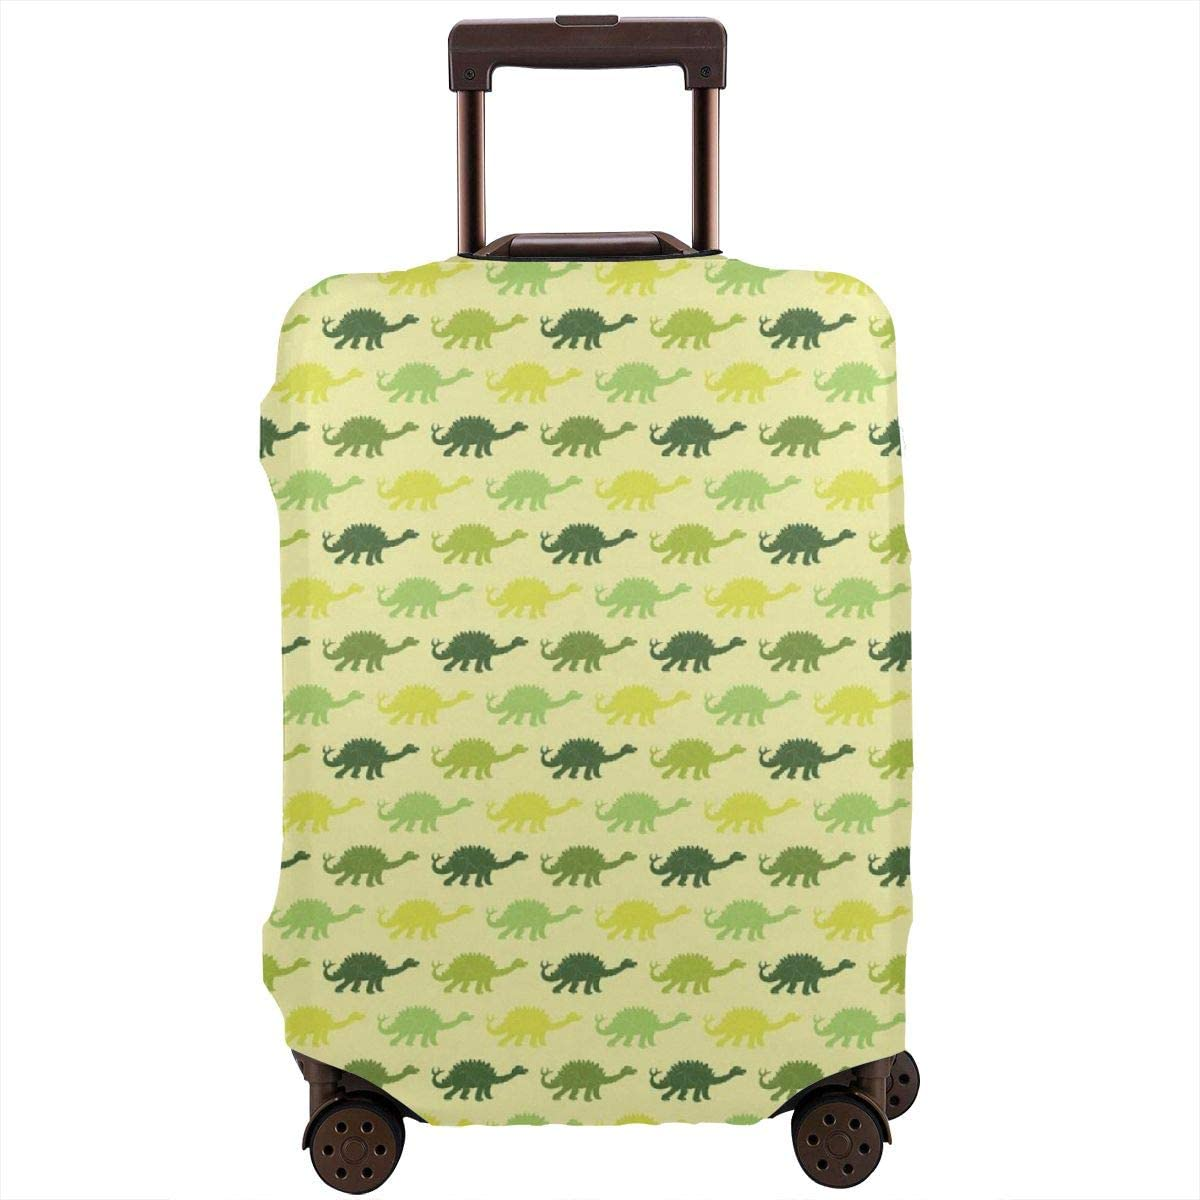 Cute Dinosaur Travel Luggage Cover Spandex Washable Suitcase Protective Cover Baggage Protector Fit 18-32 inch Suitcase